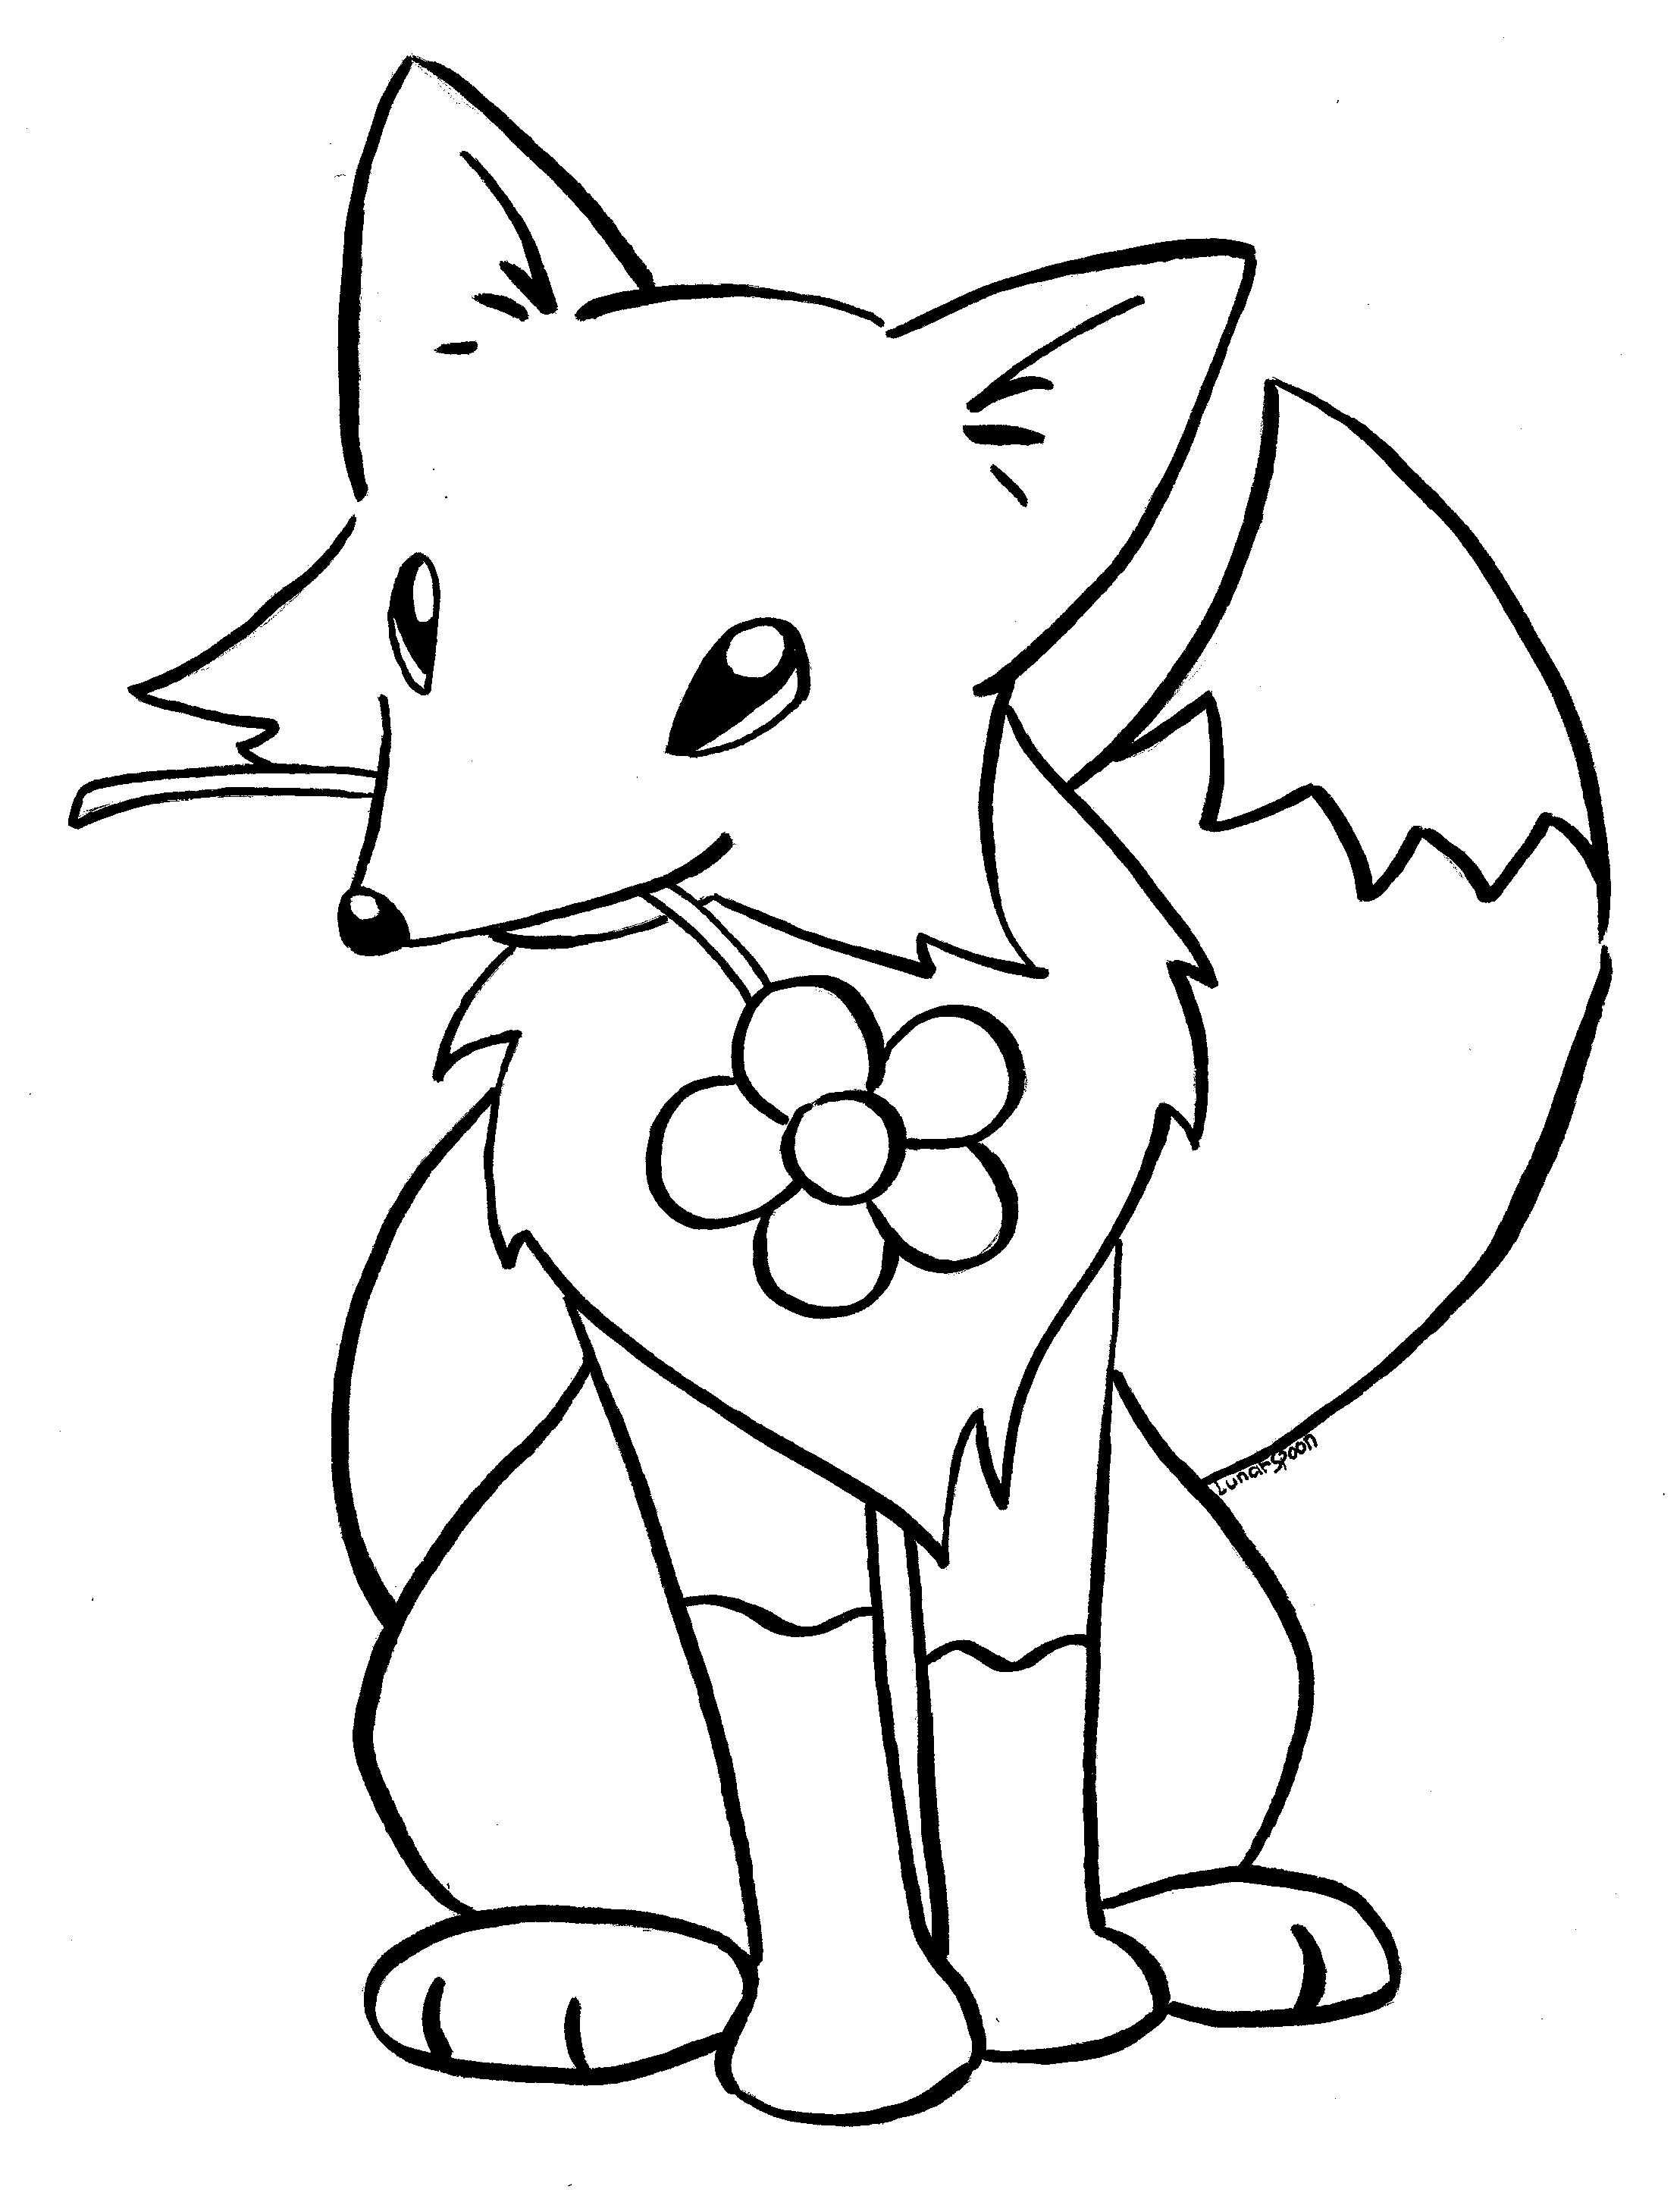 kitsune coloring book page by lunarspoon on deviantart anime fox coloring pages kitsune coloring pages cute